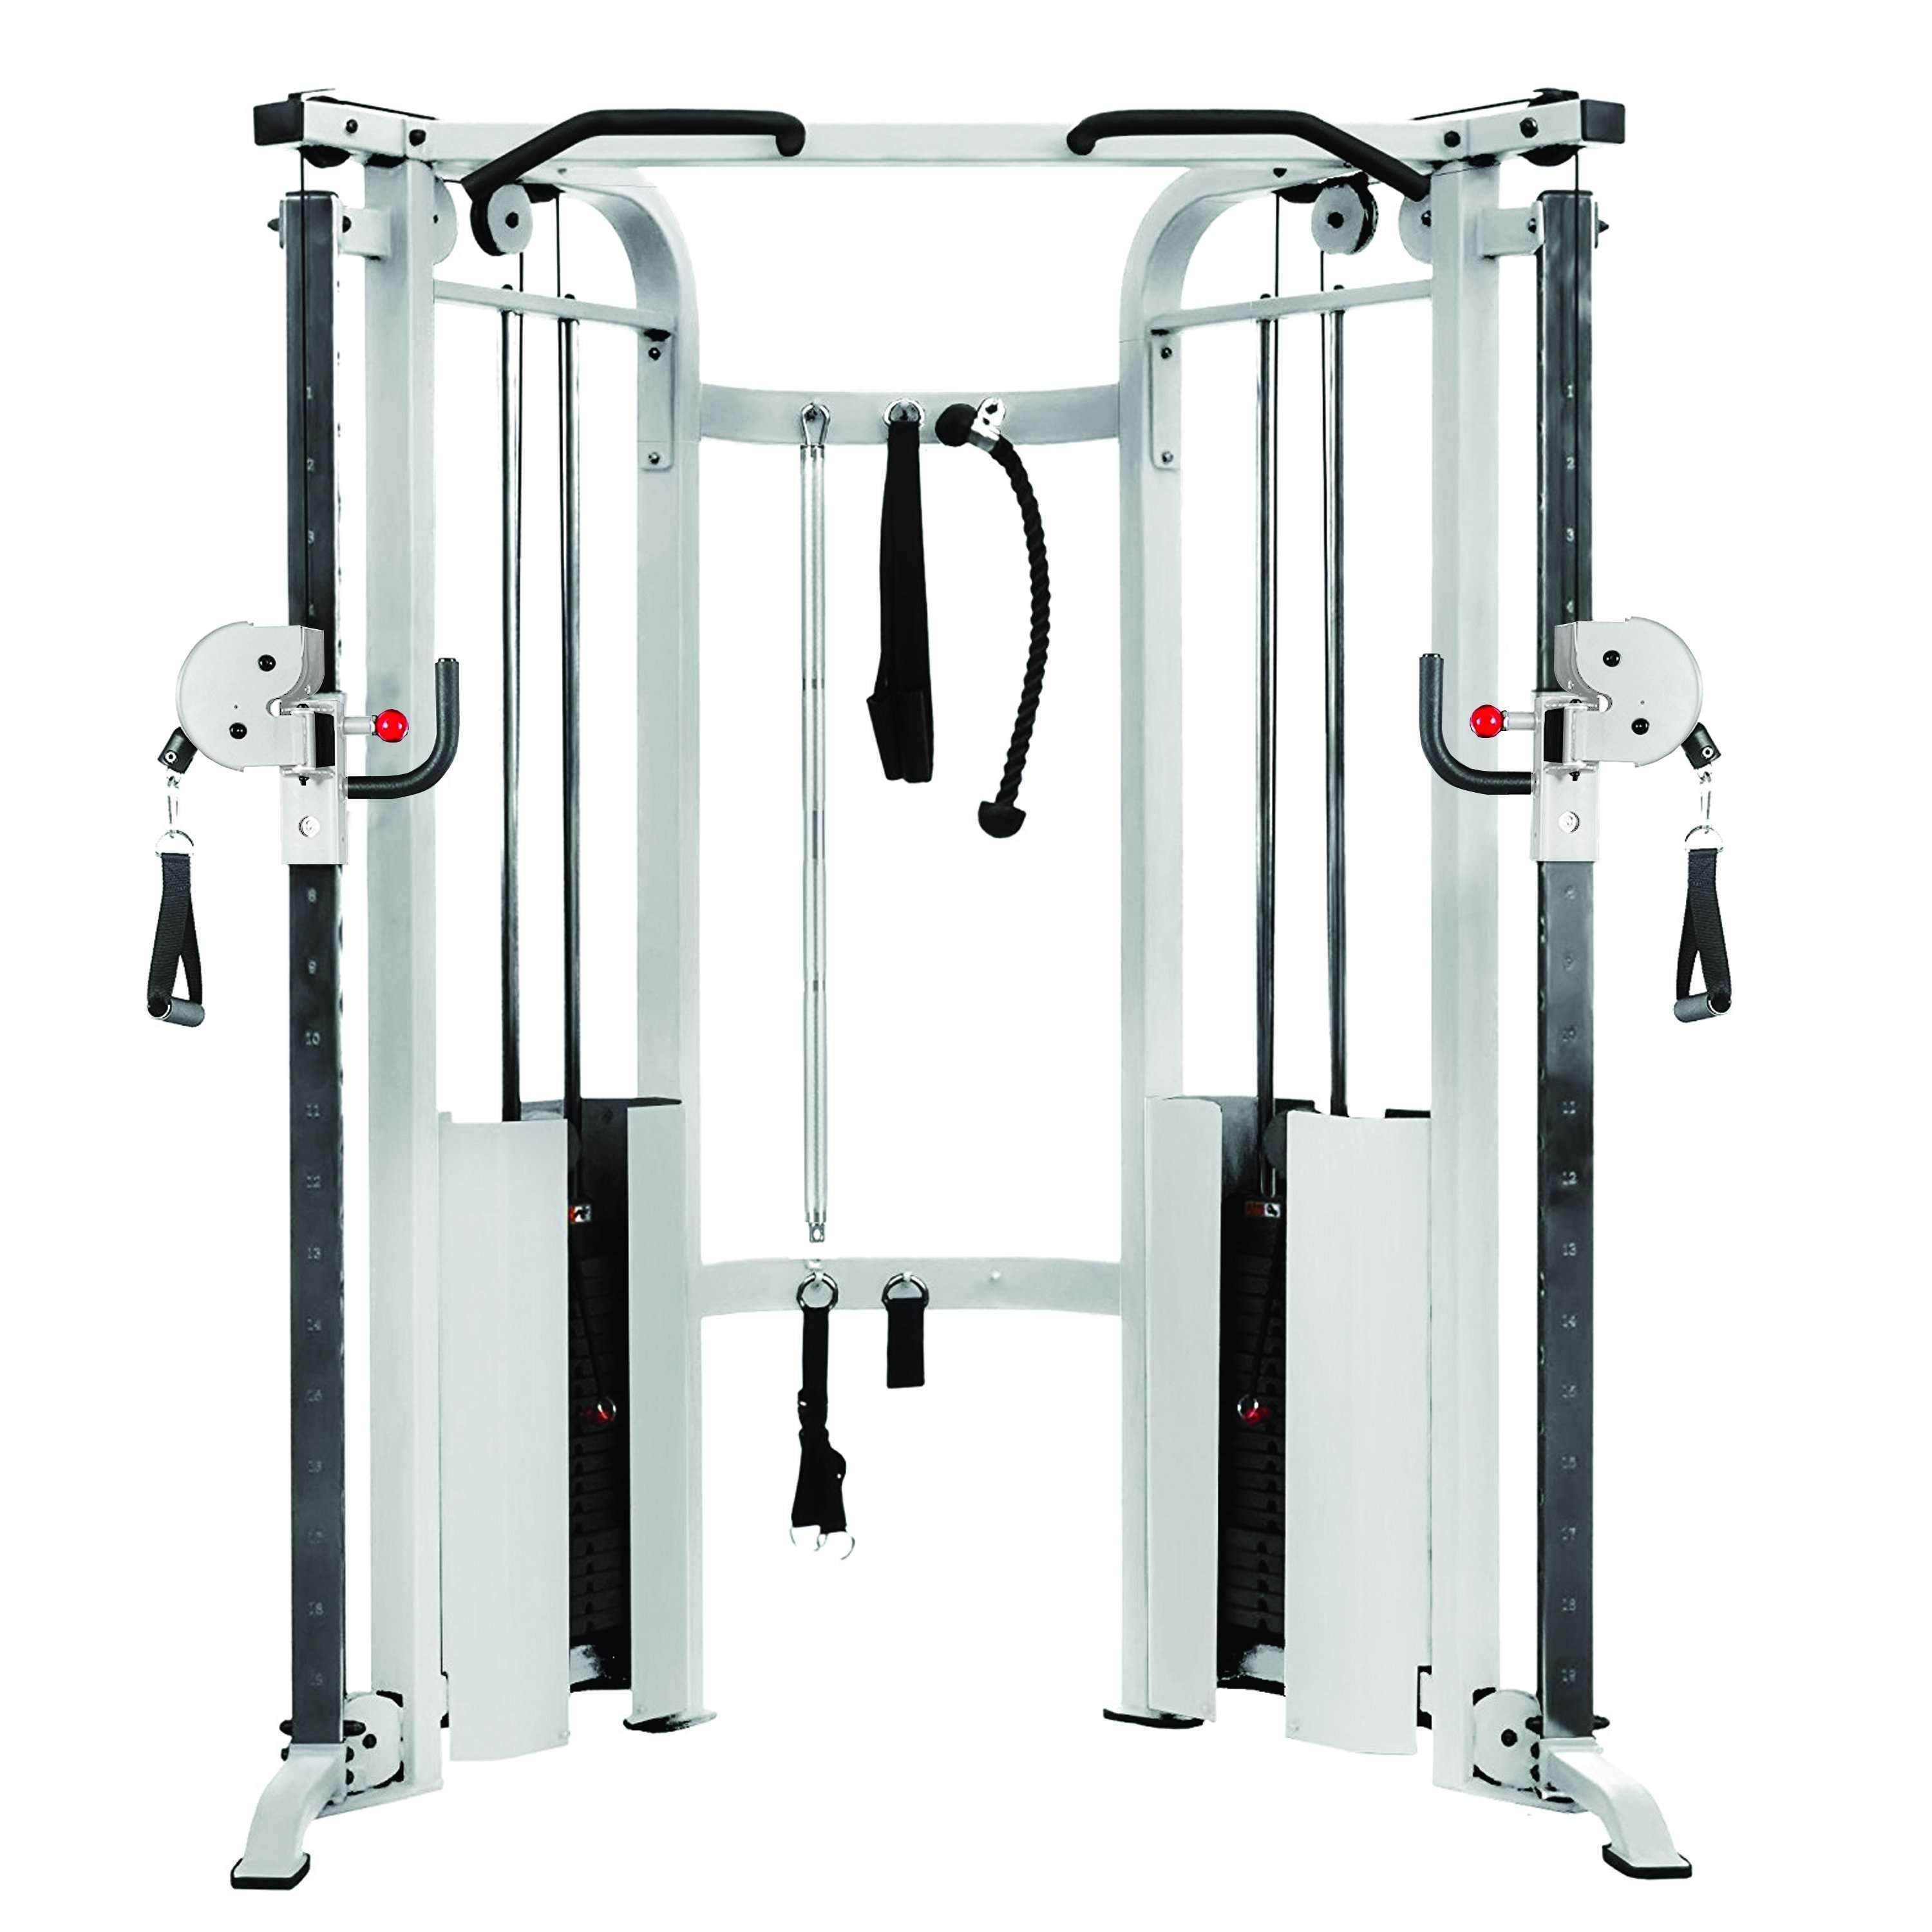 White commercial cable crossover gym equipment xmark fitness